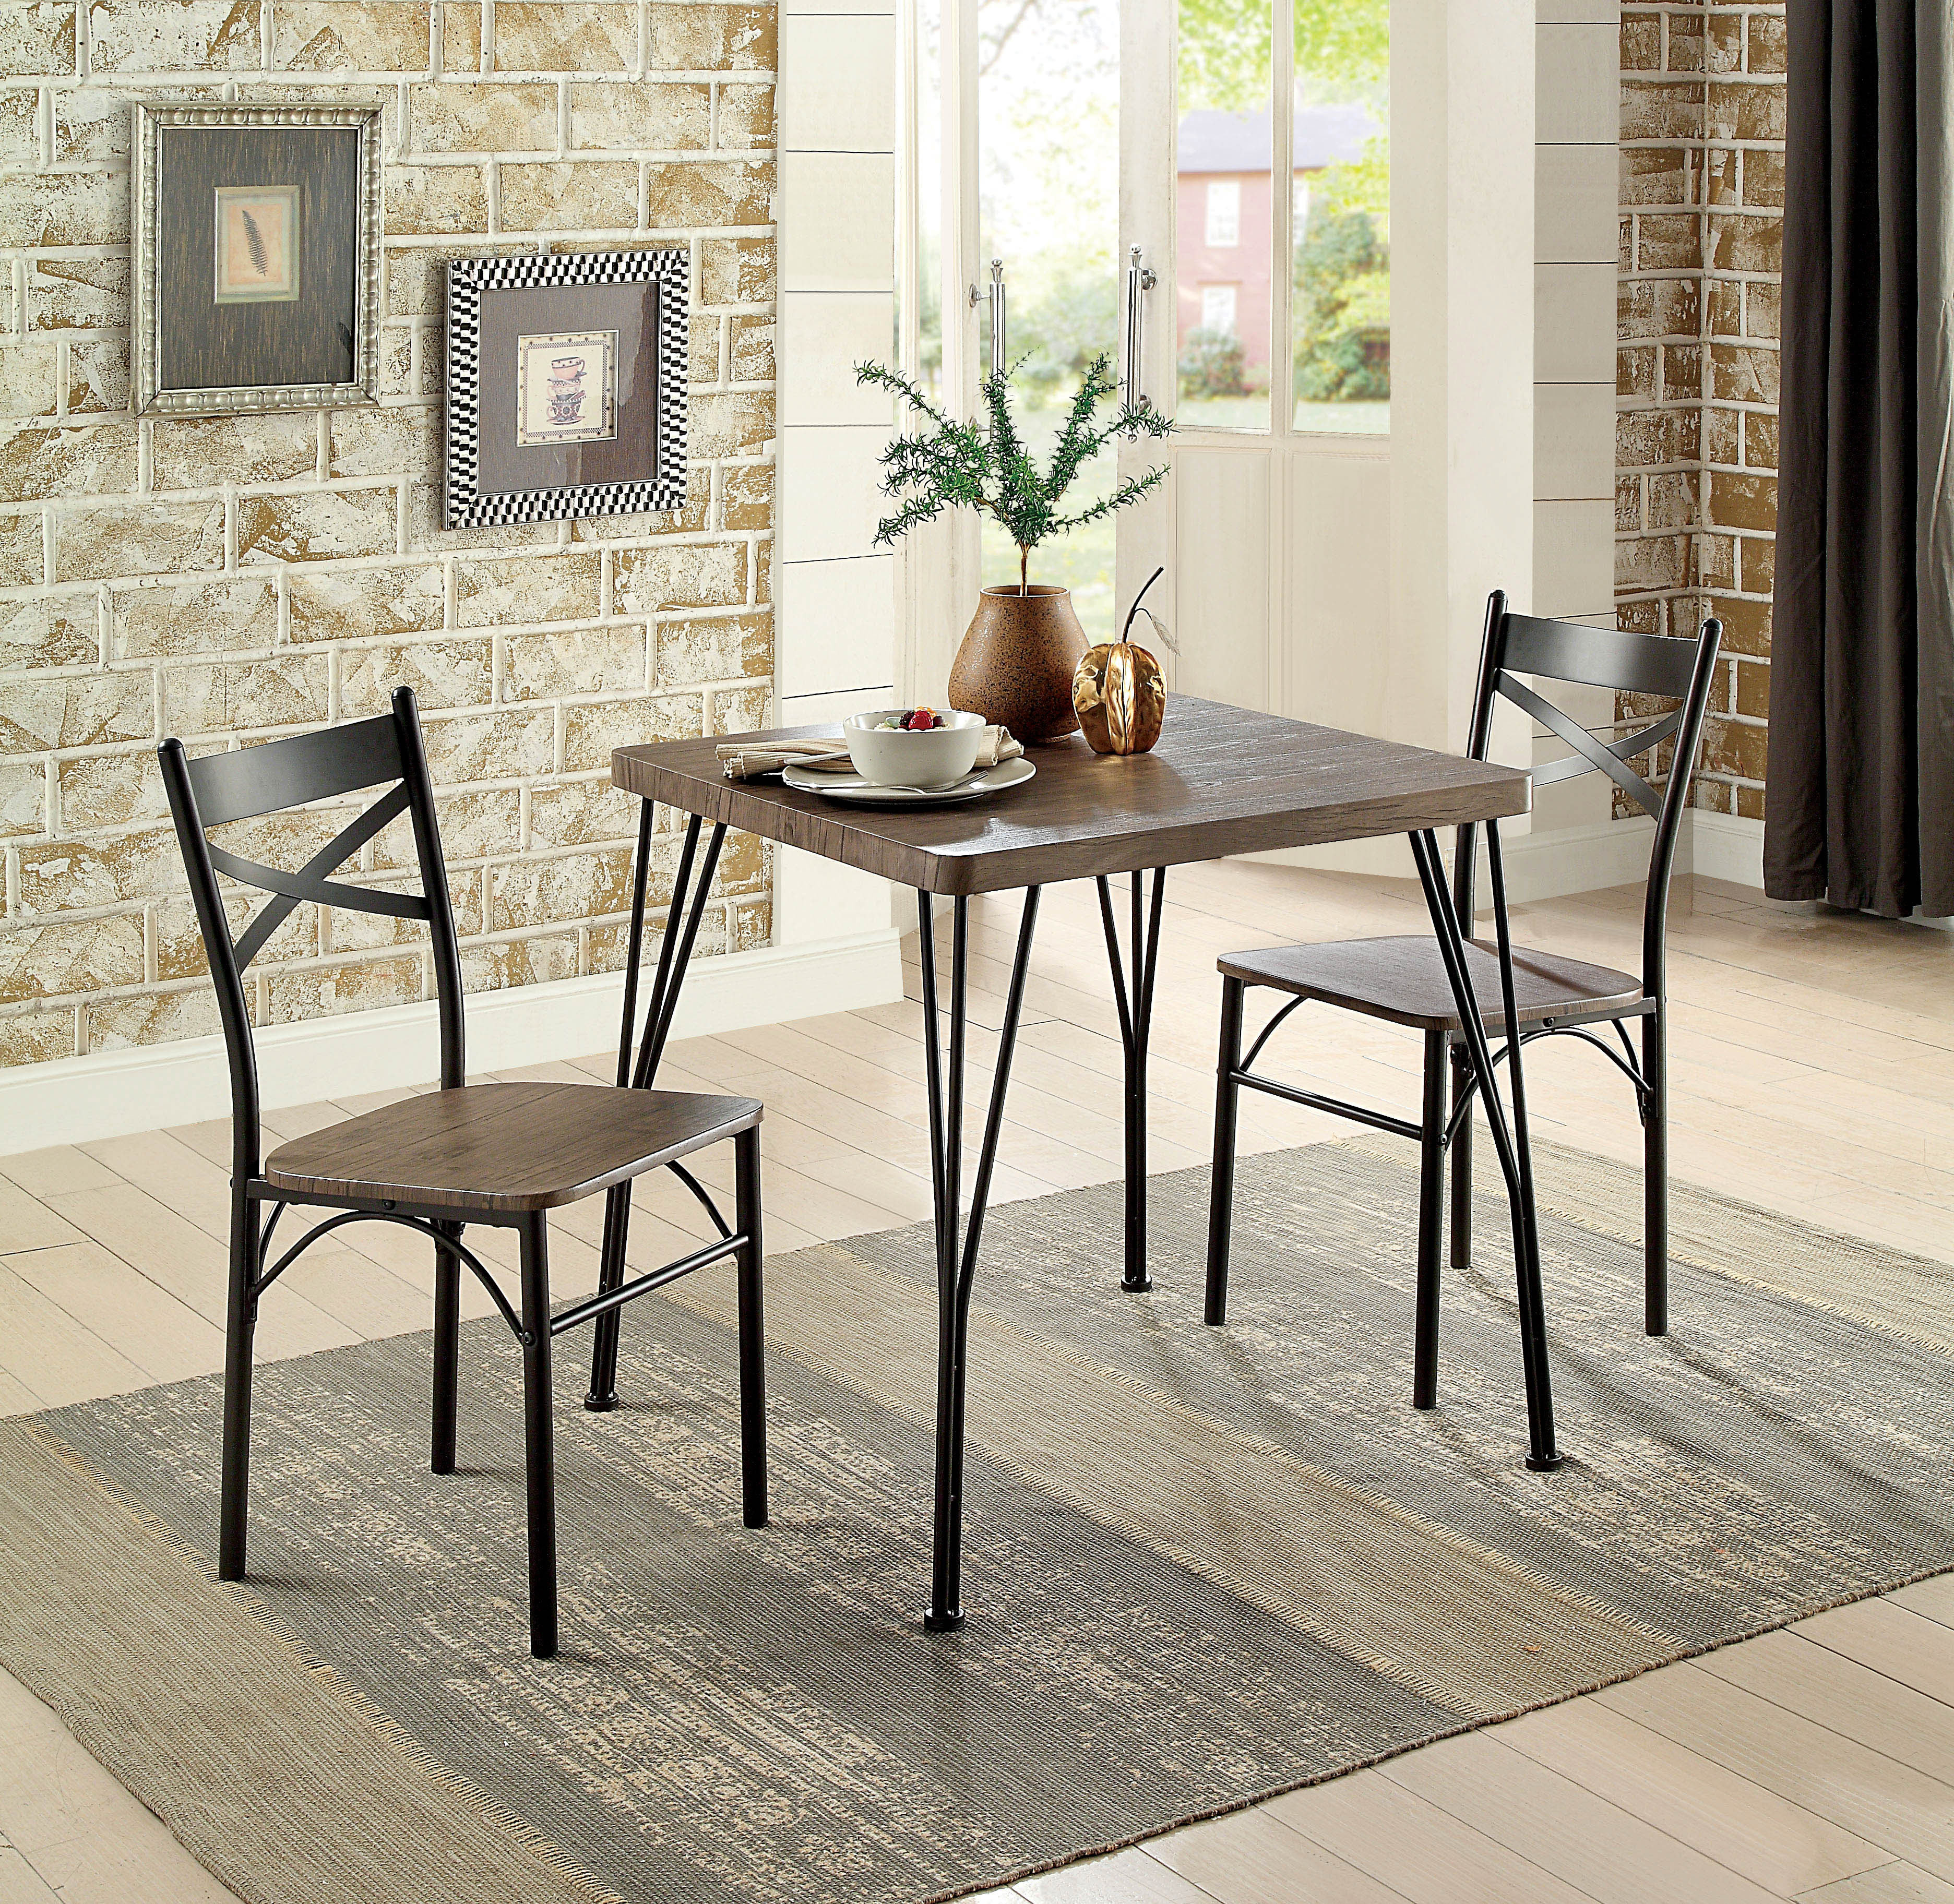 Guertin 3 Piece Dining Set Pertaining To Latest Middleport 5 Piece Dining Sets (View 8 of 20)